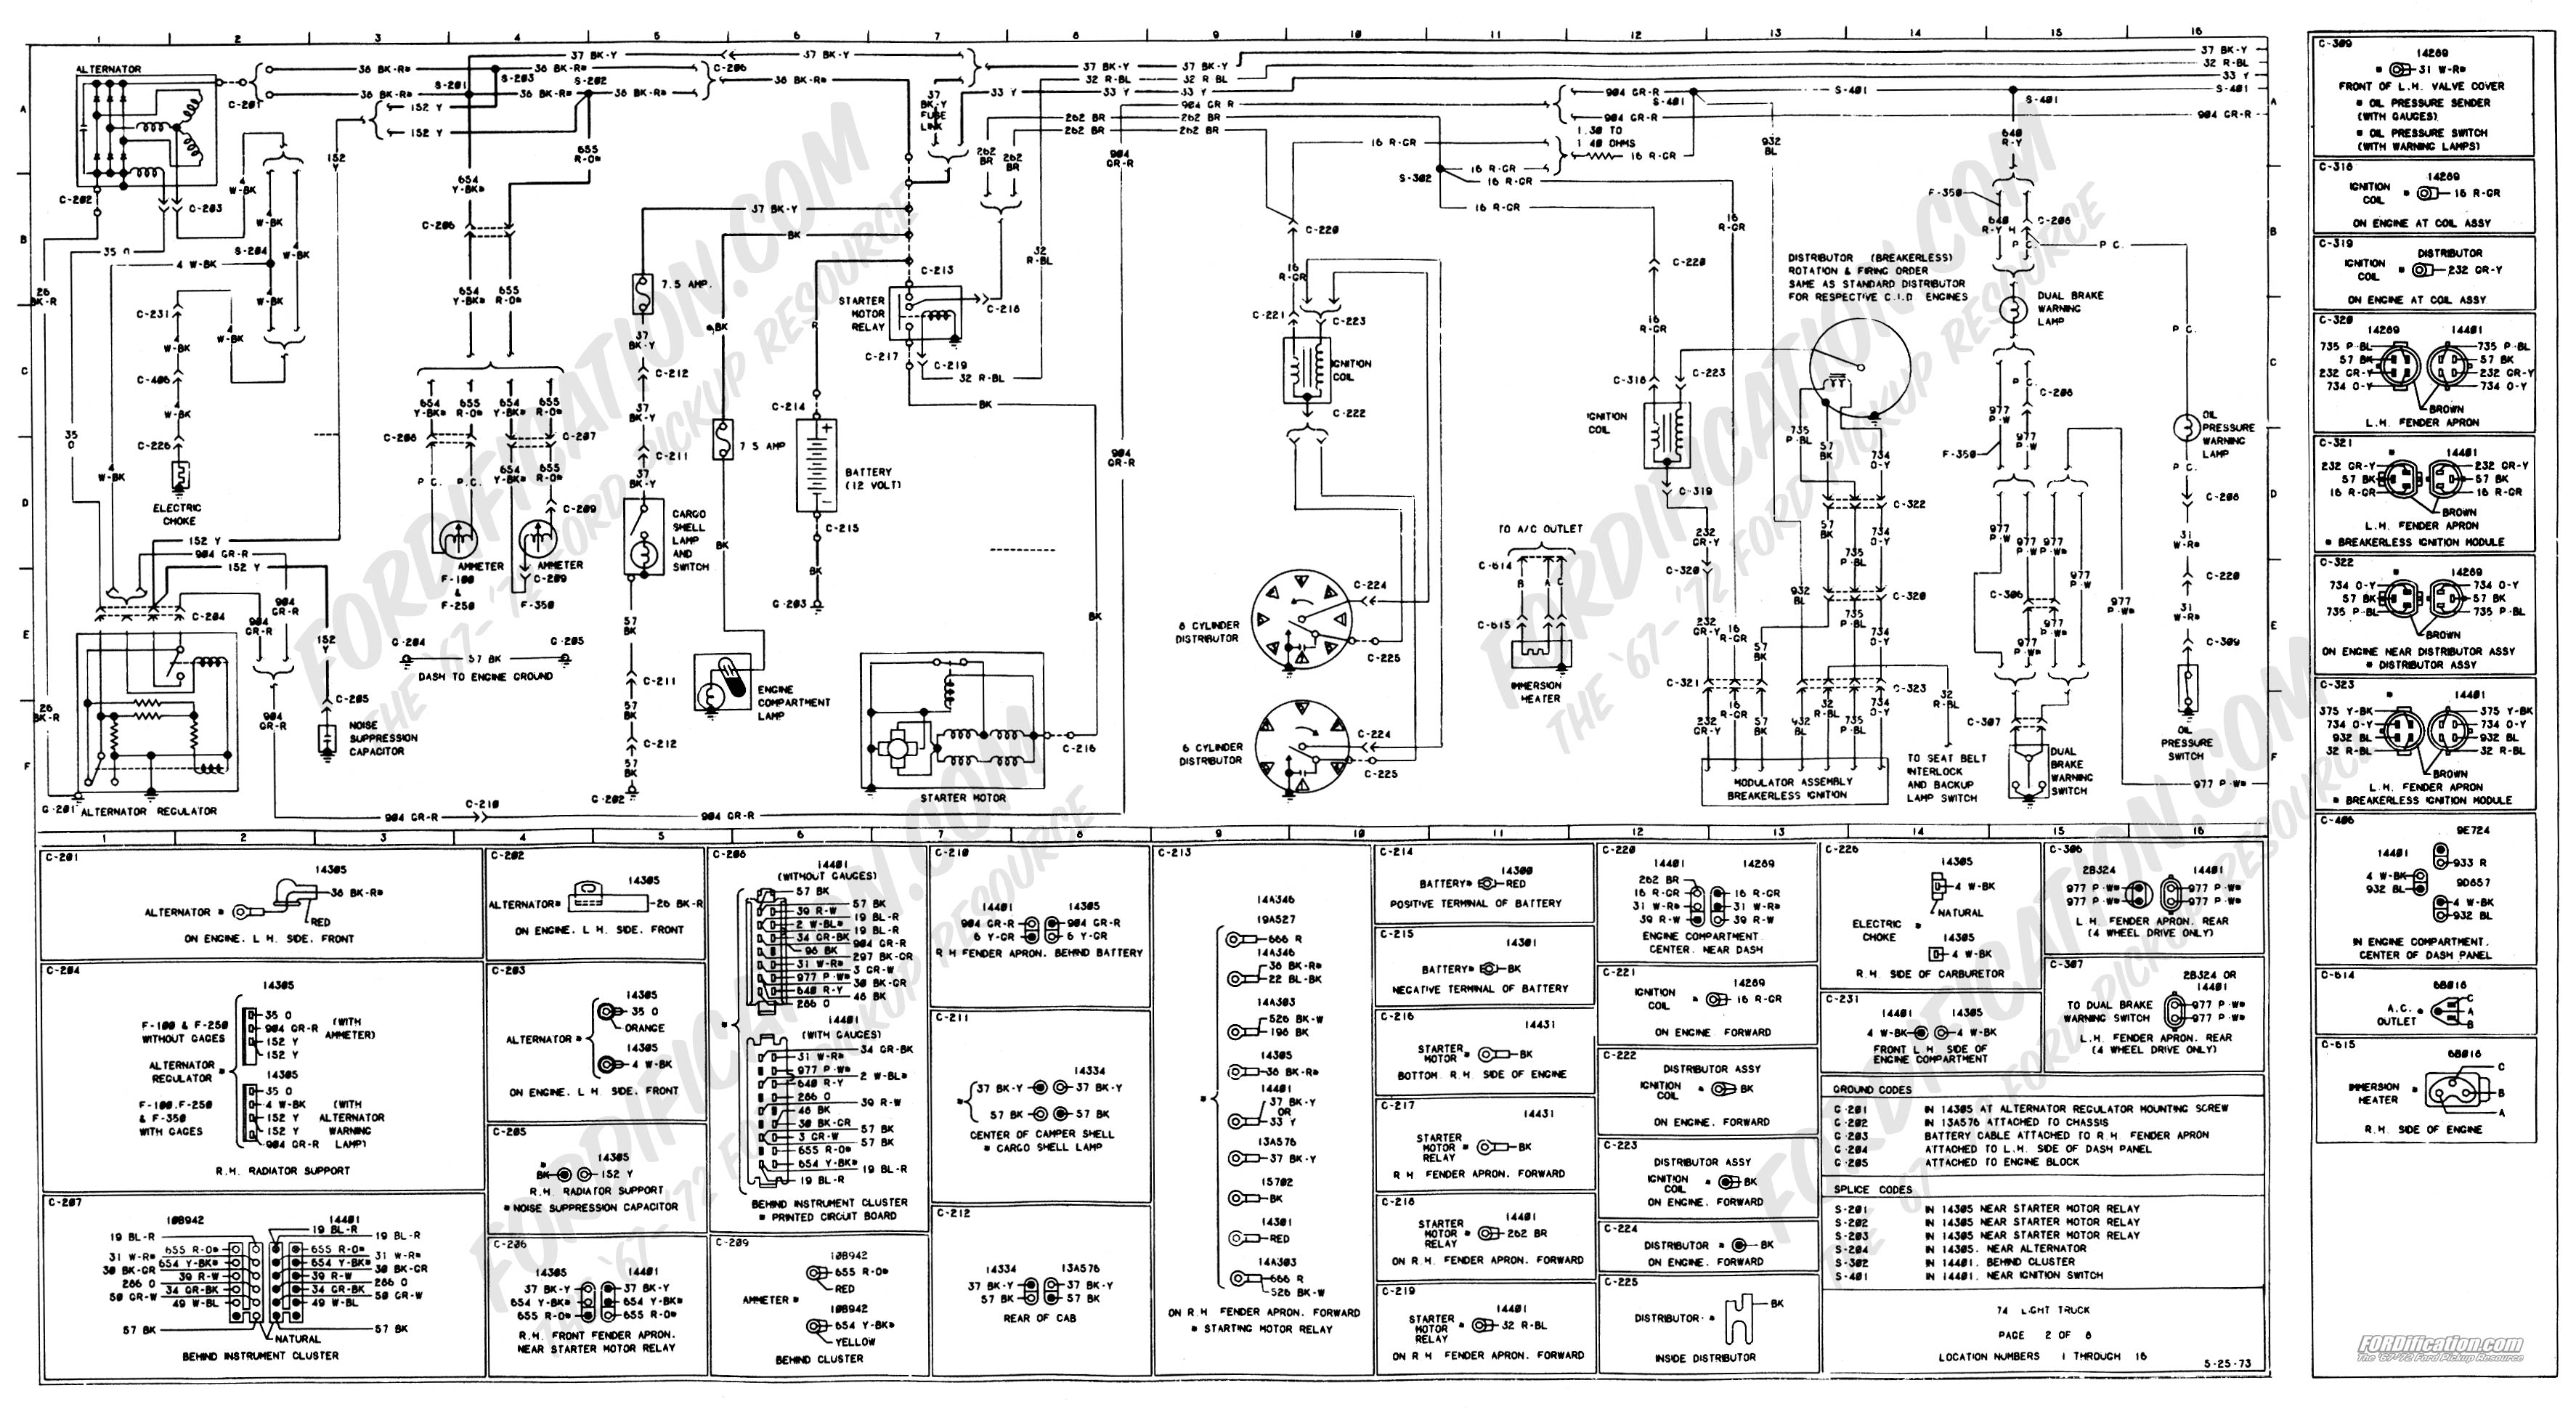 1973 1979 ford truck wiring diagrams schematics fordification net rh fordification net Ford E 350 Wiring Diagrams Brakelights Ford E-350 Fuel Wiring Diagram